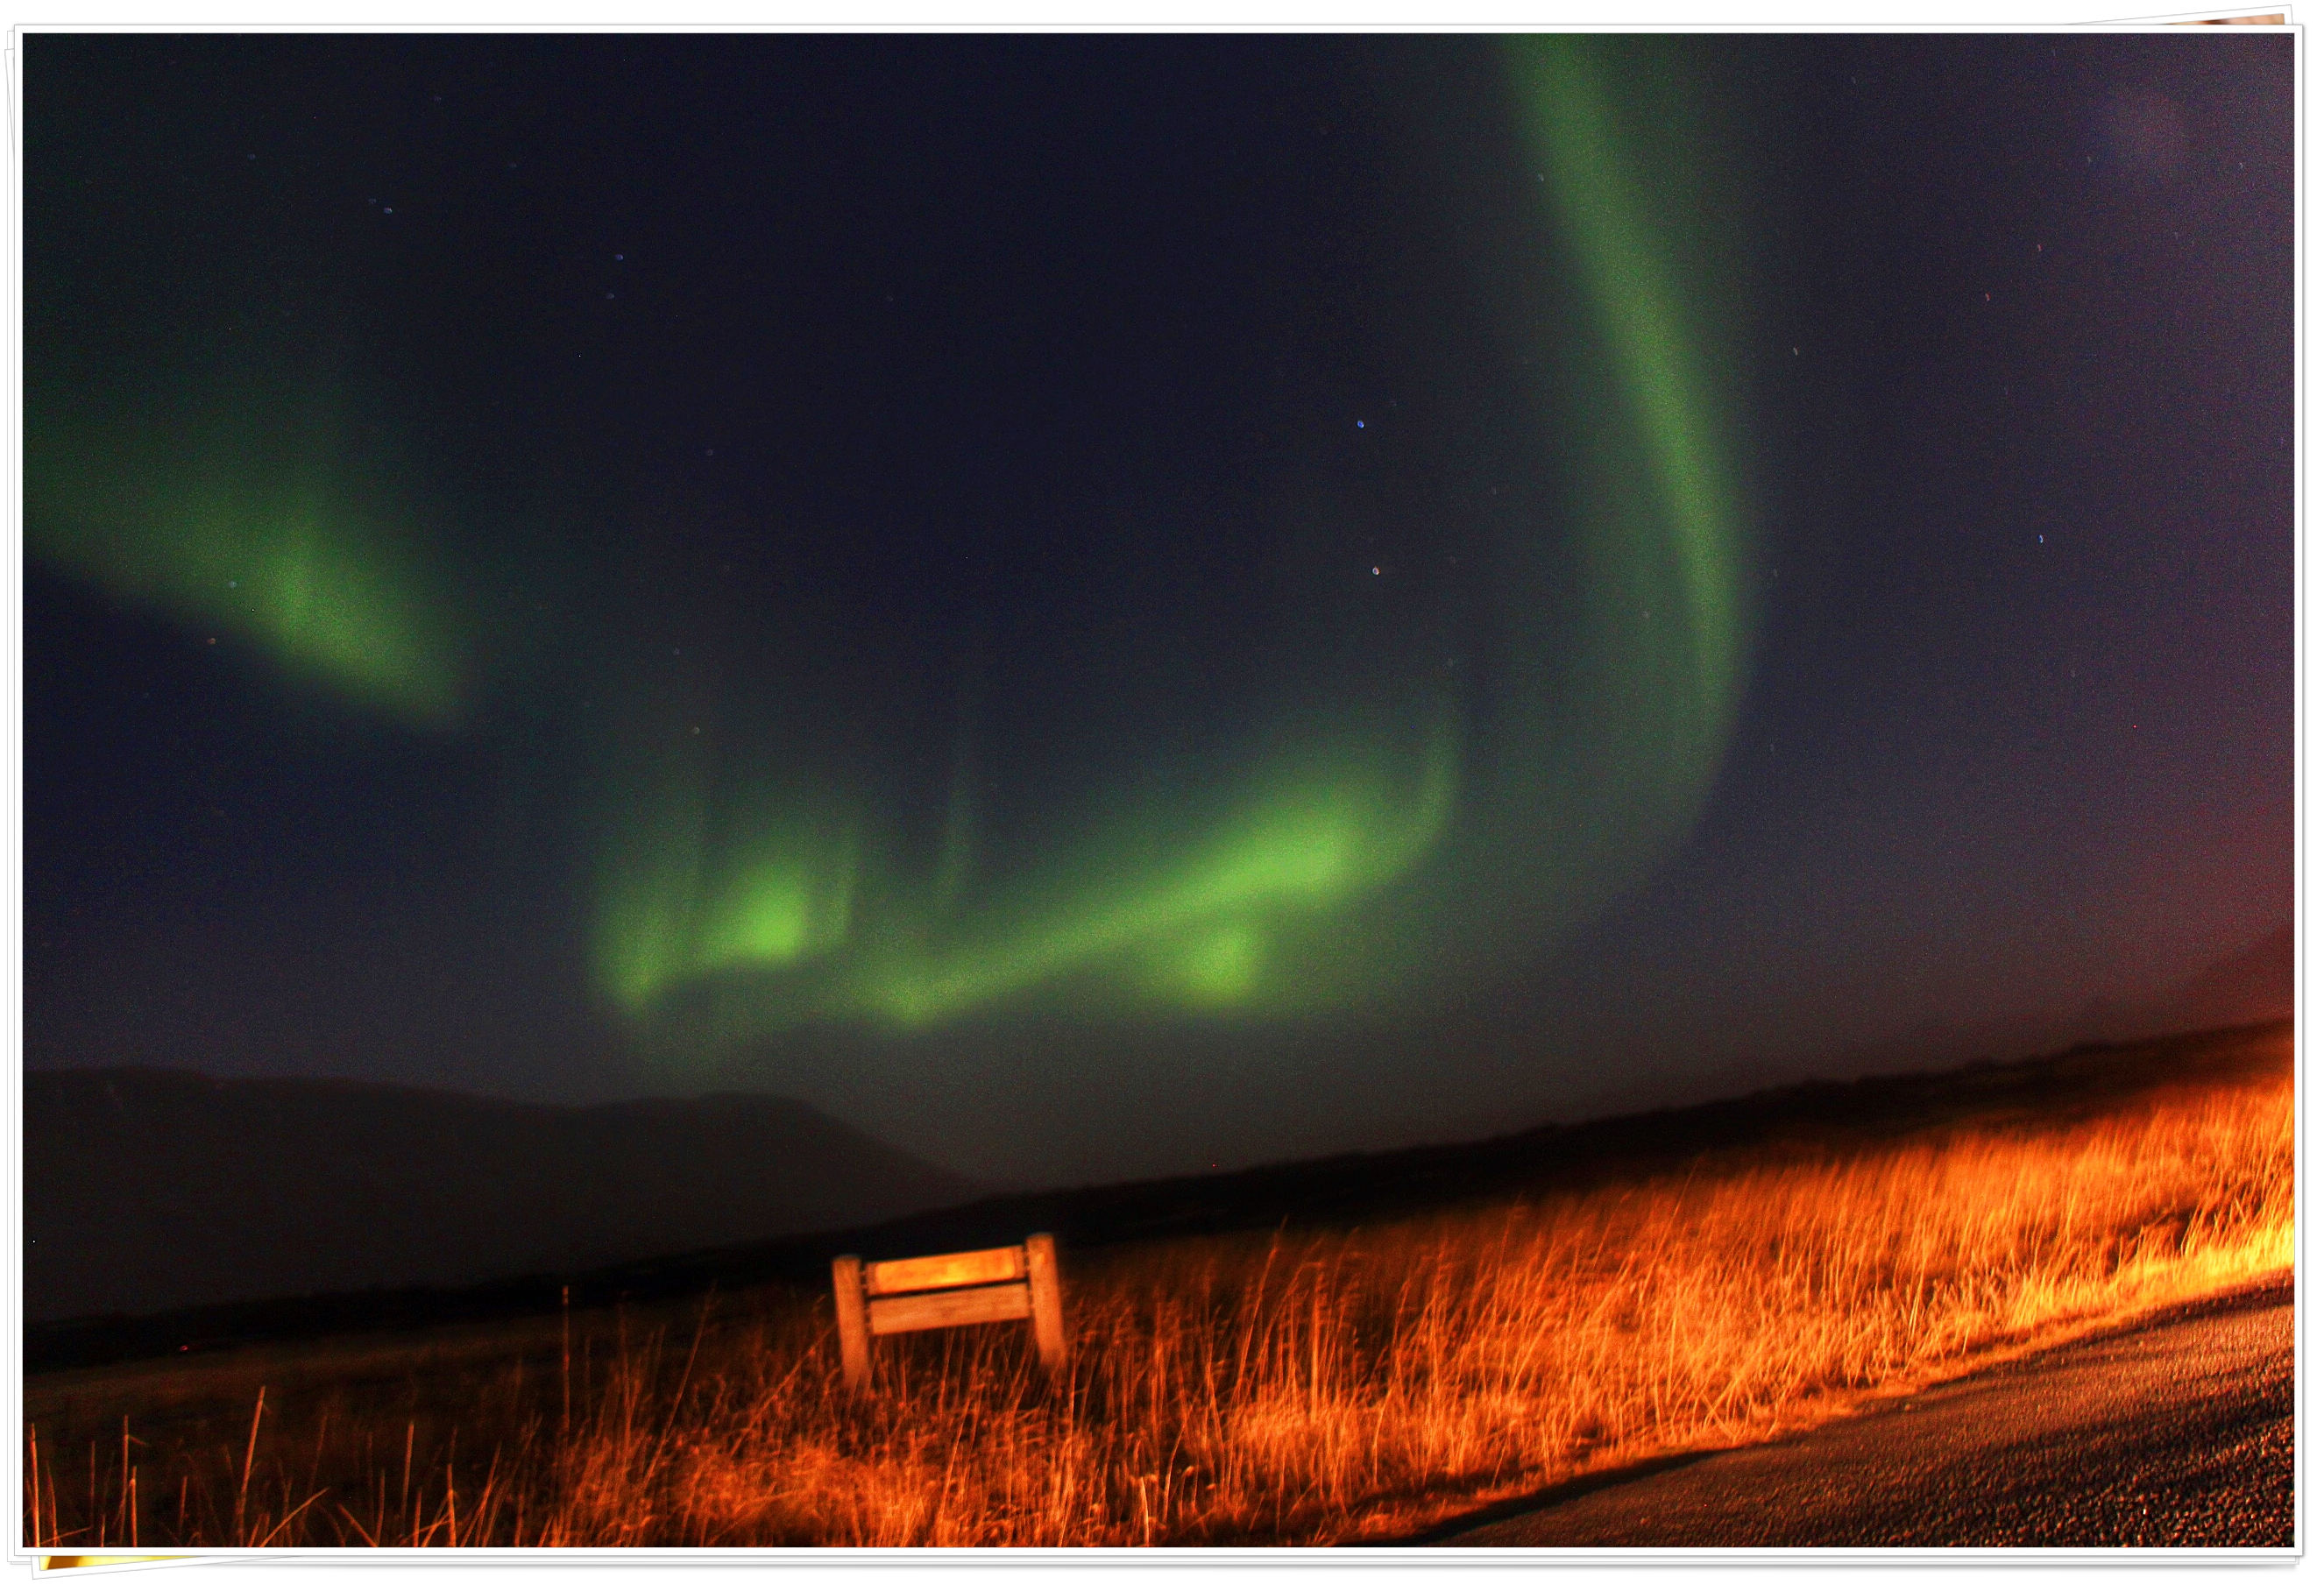 The Northern Light, Reykjavik, Iceland - Nov 2014